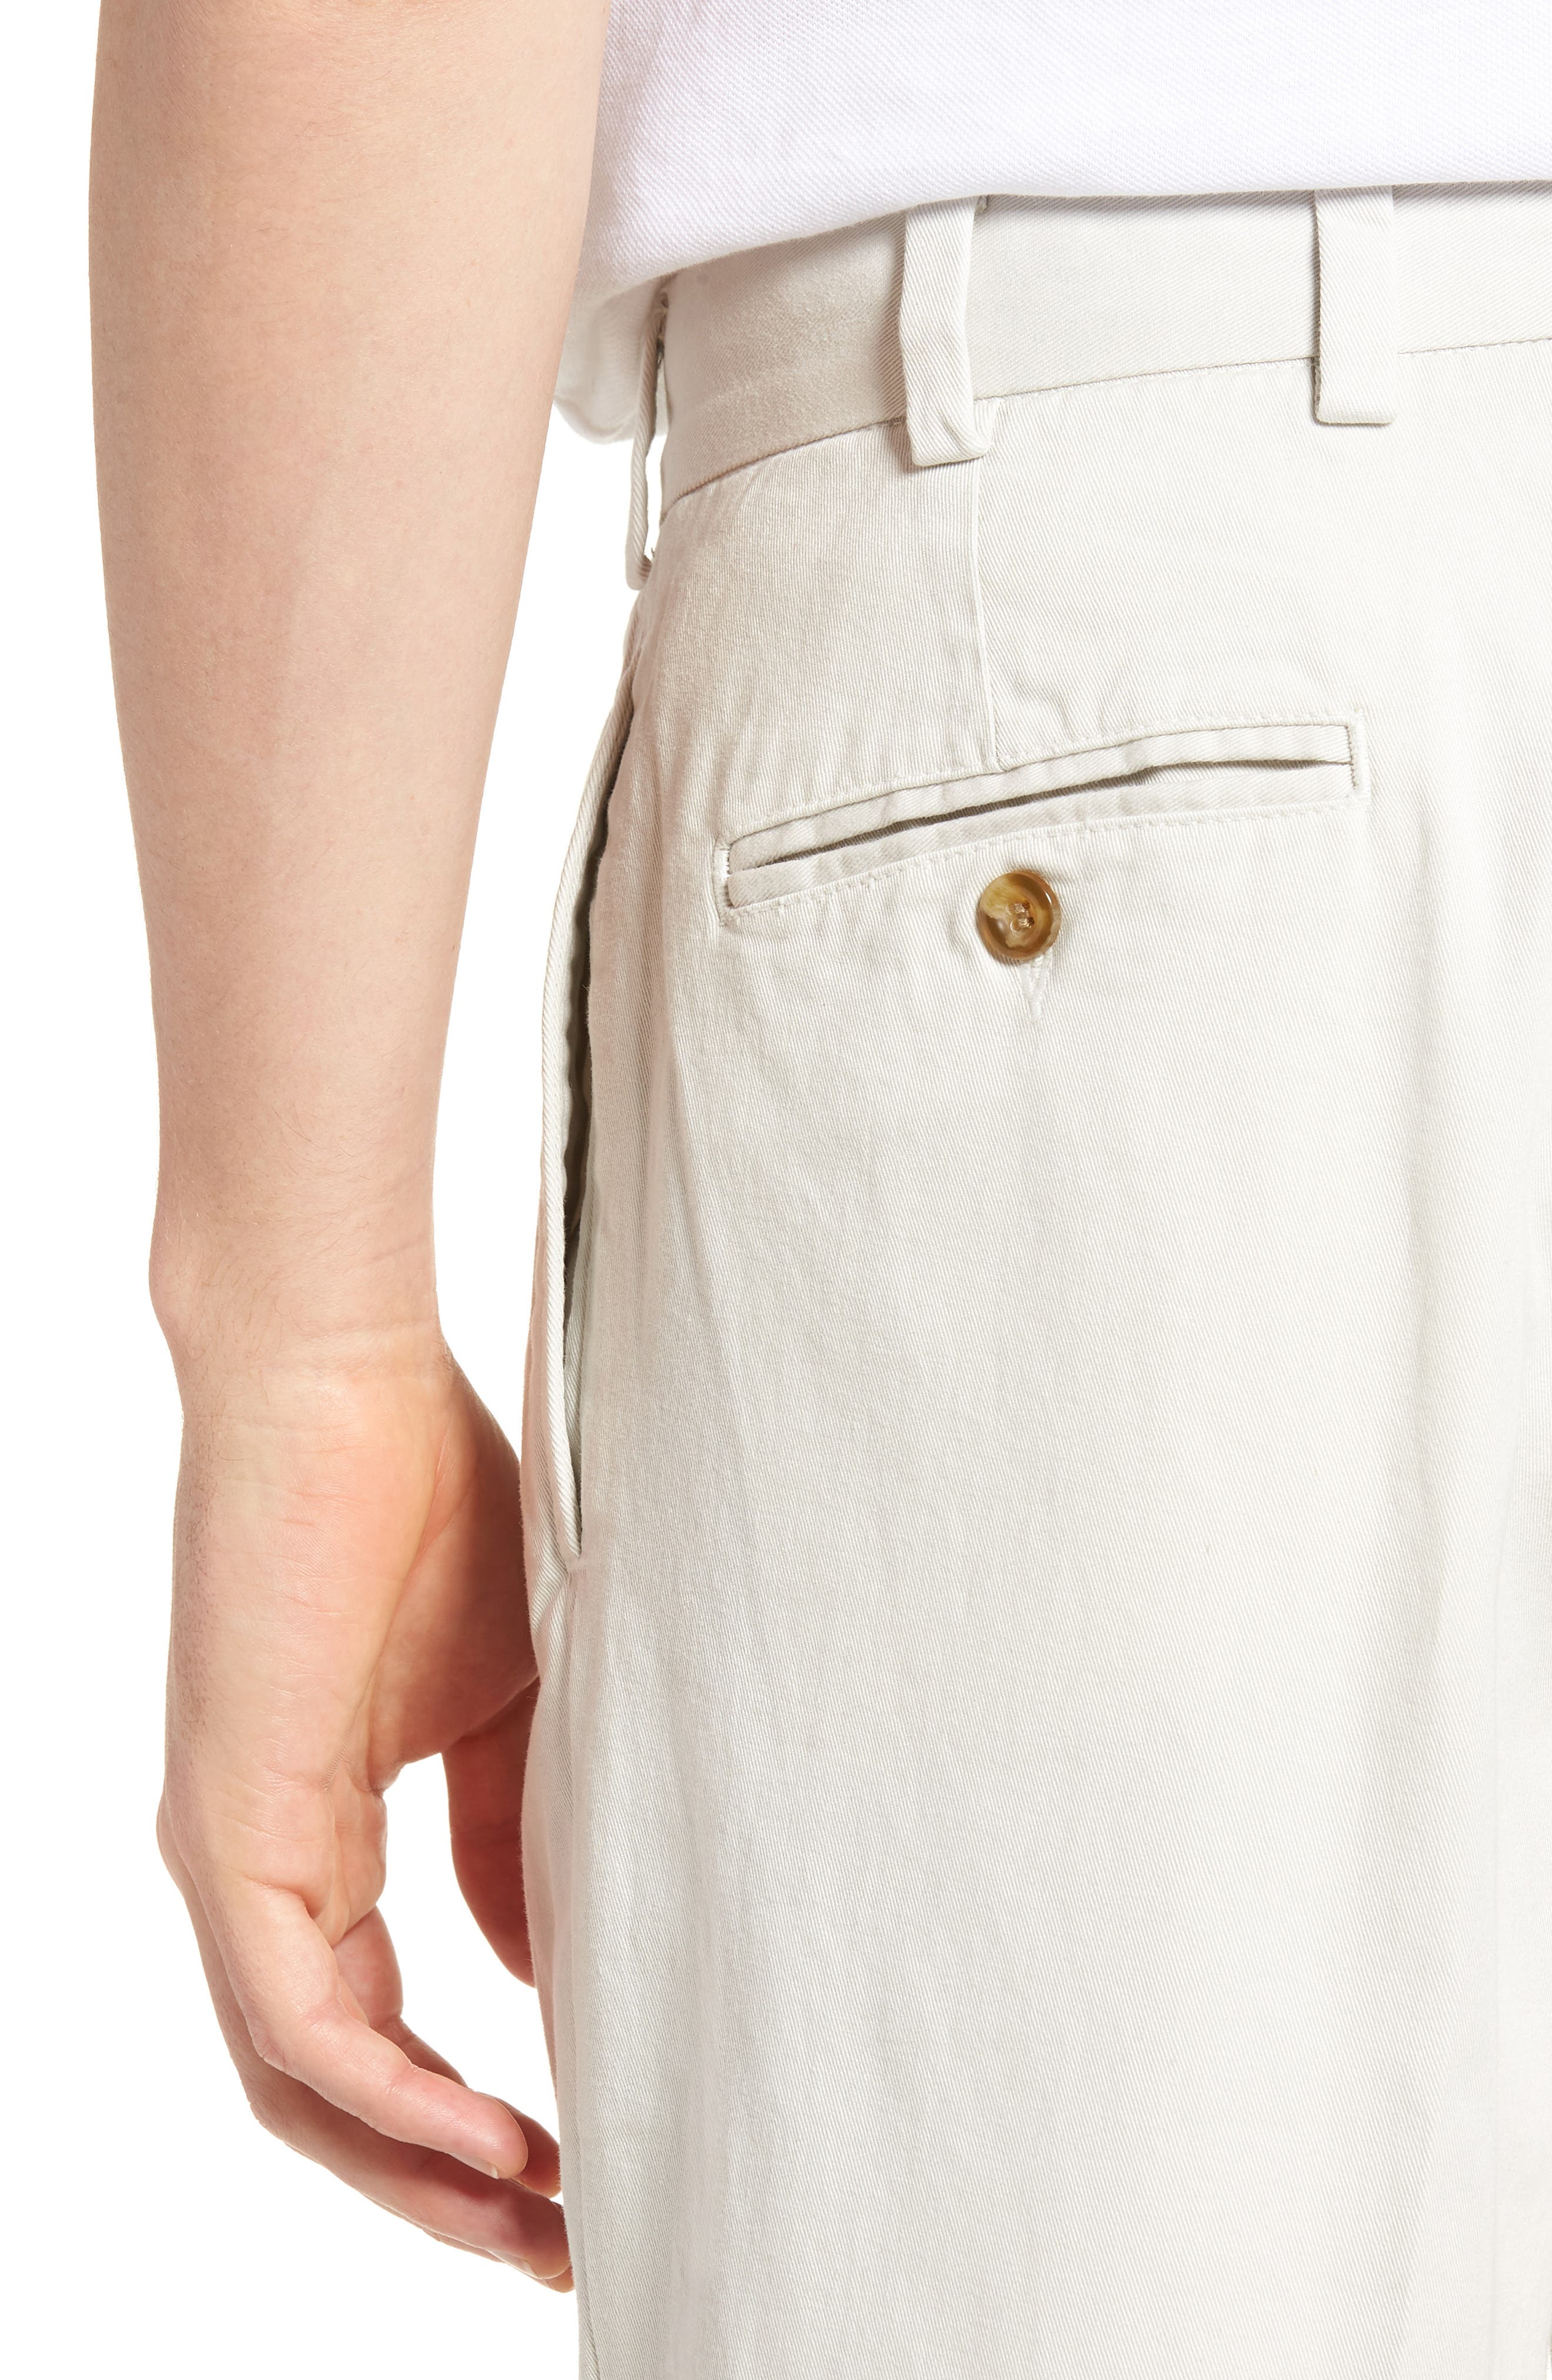 M2 Classic Fit Vintage Twill Pleated Pants,                             Alternate thumbnail 4, color,                             270